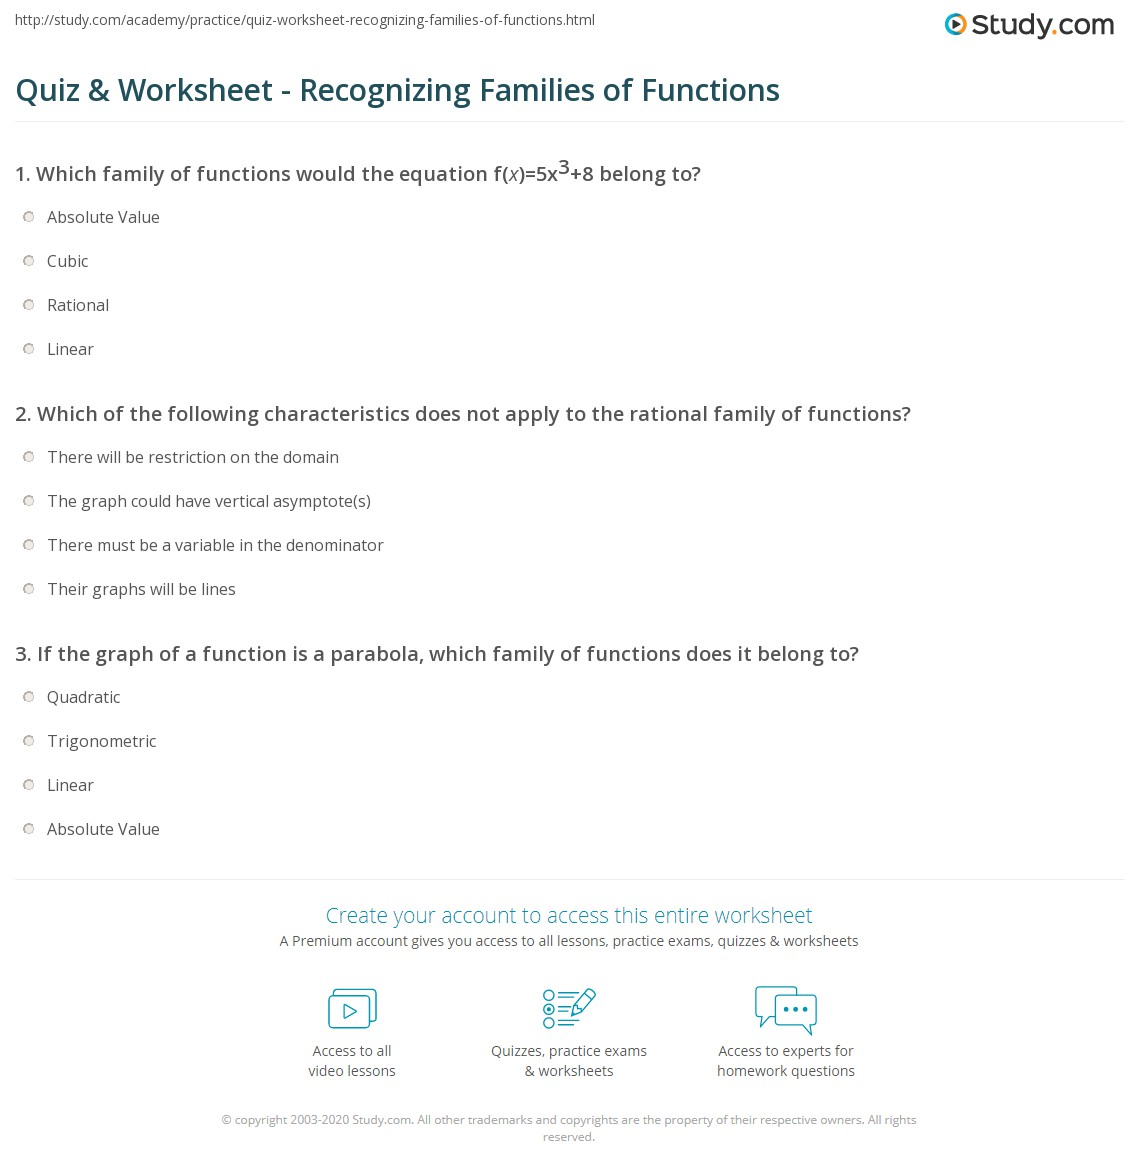 worksheet Function Or Not Worksheet quiz worksheet recognizing families of functions study com print how to identify worksheet